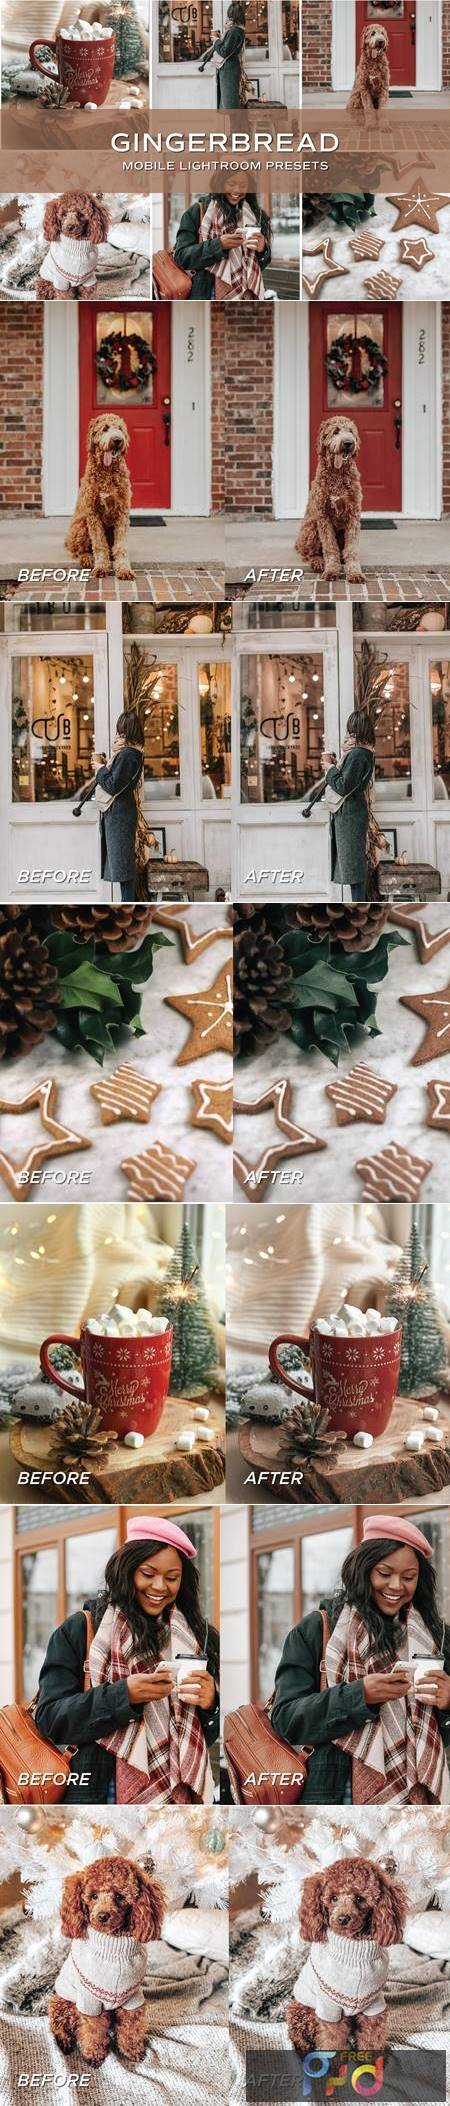 5 Gingerbread Lightroom Presets 5701797 1